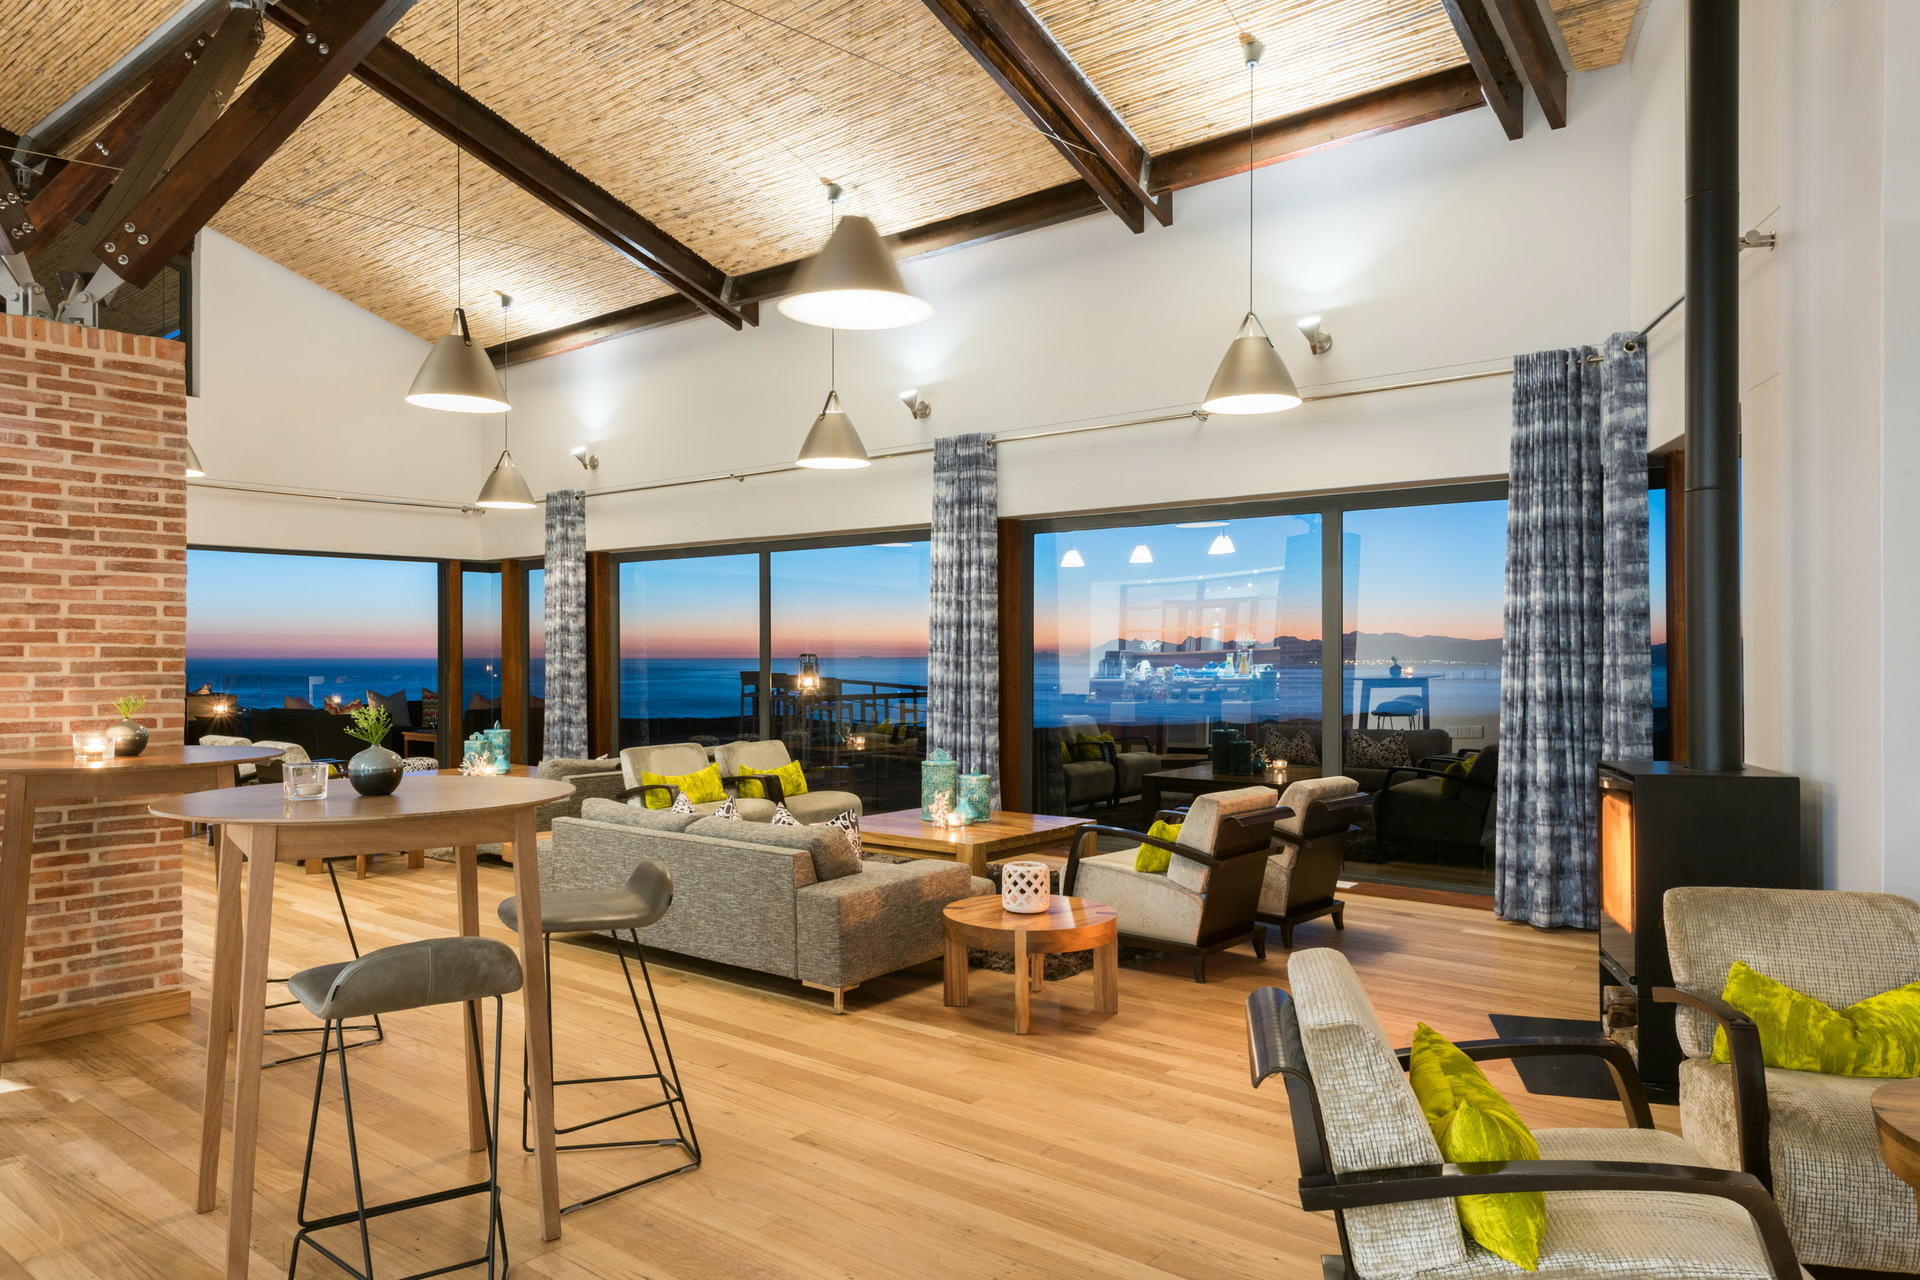 grootbos forest lodge - second lounge area #1.jpg